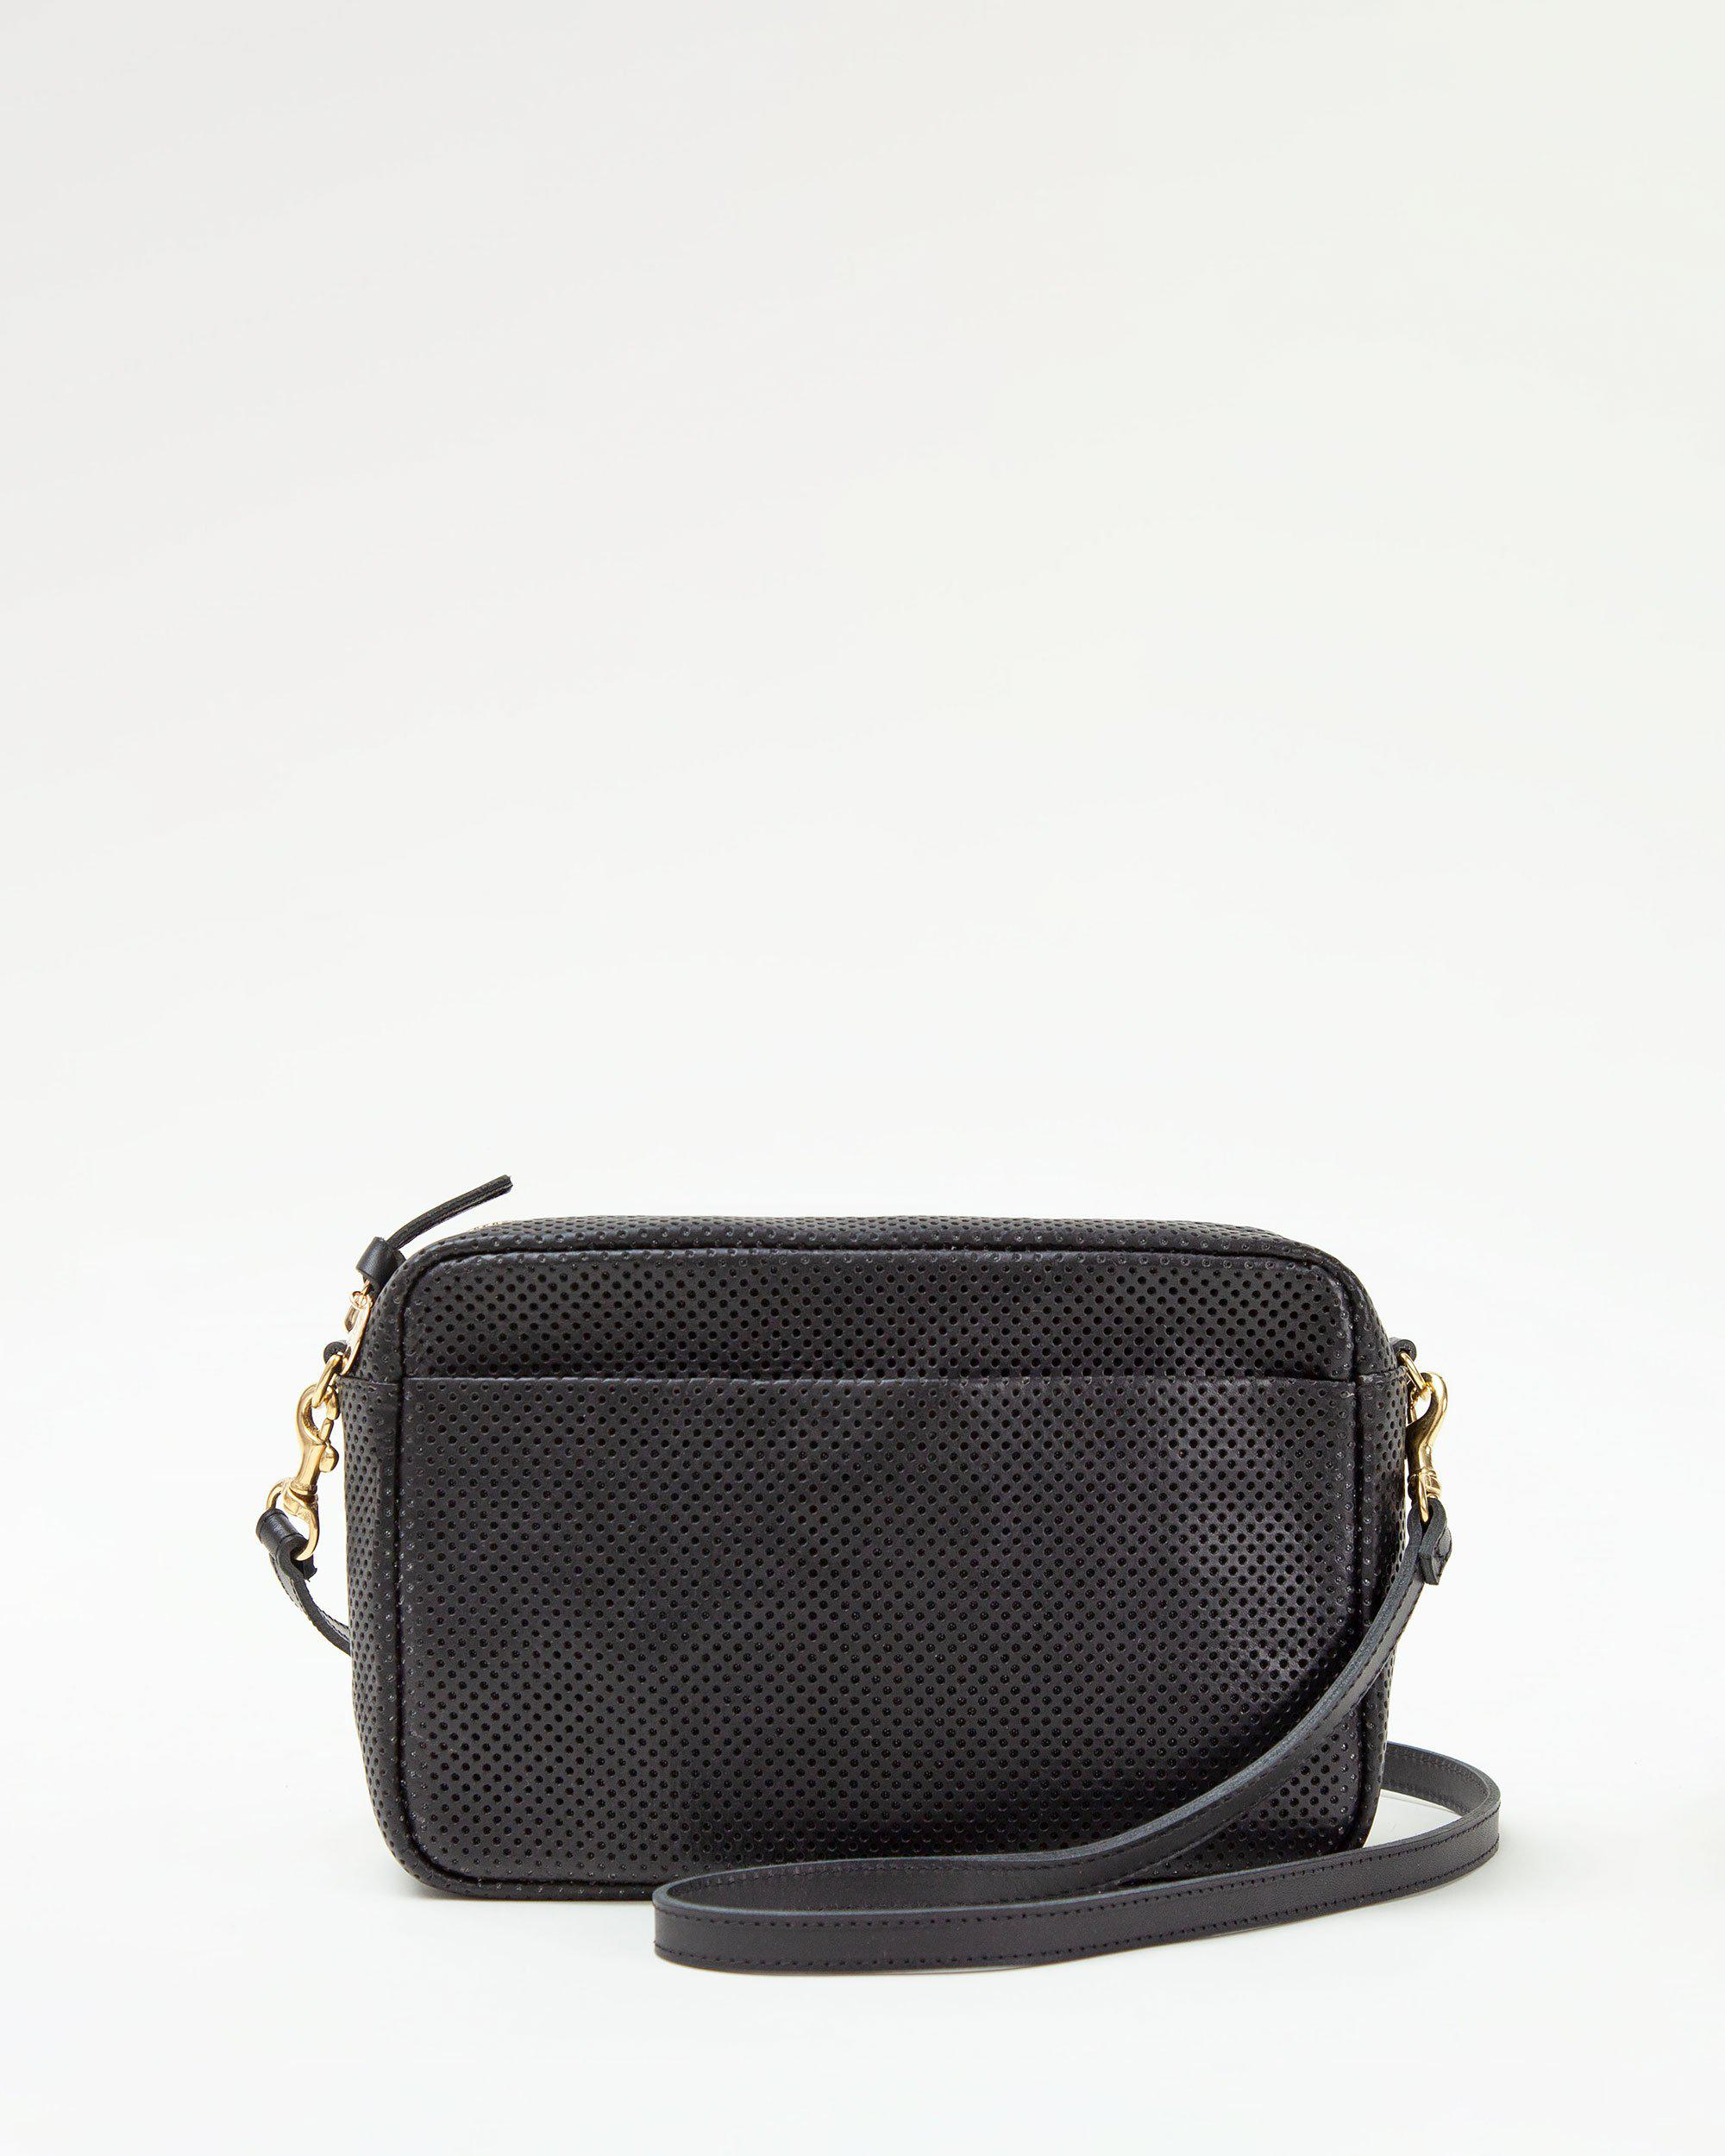 Marisol with Front Pocket